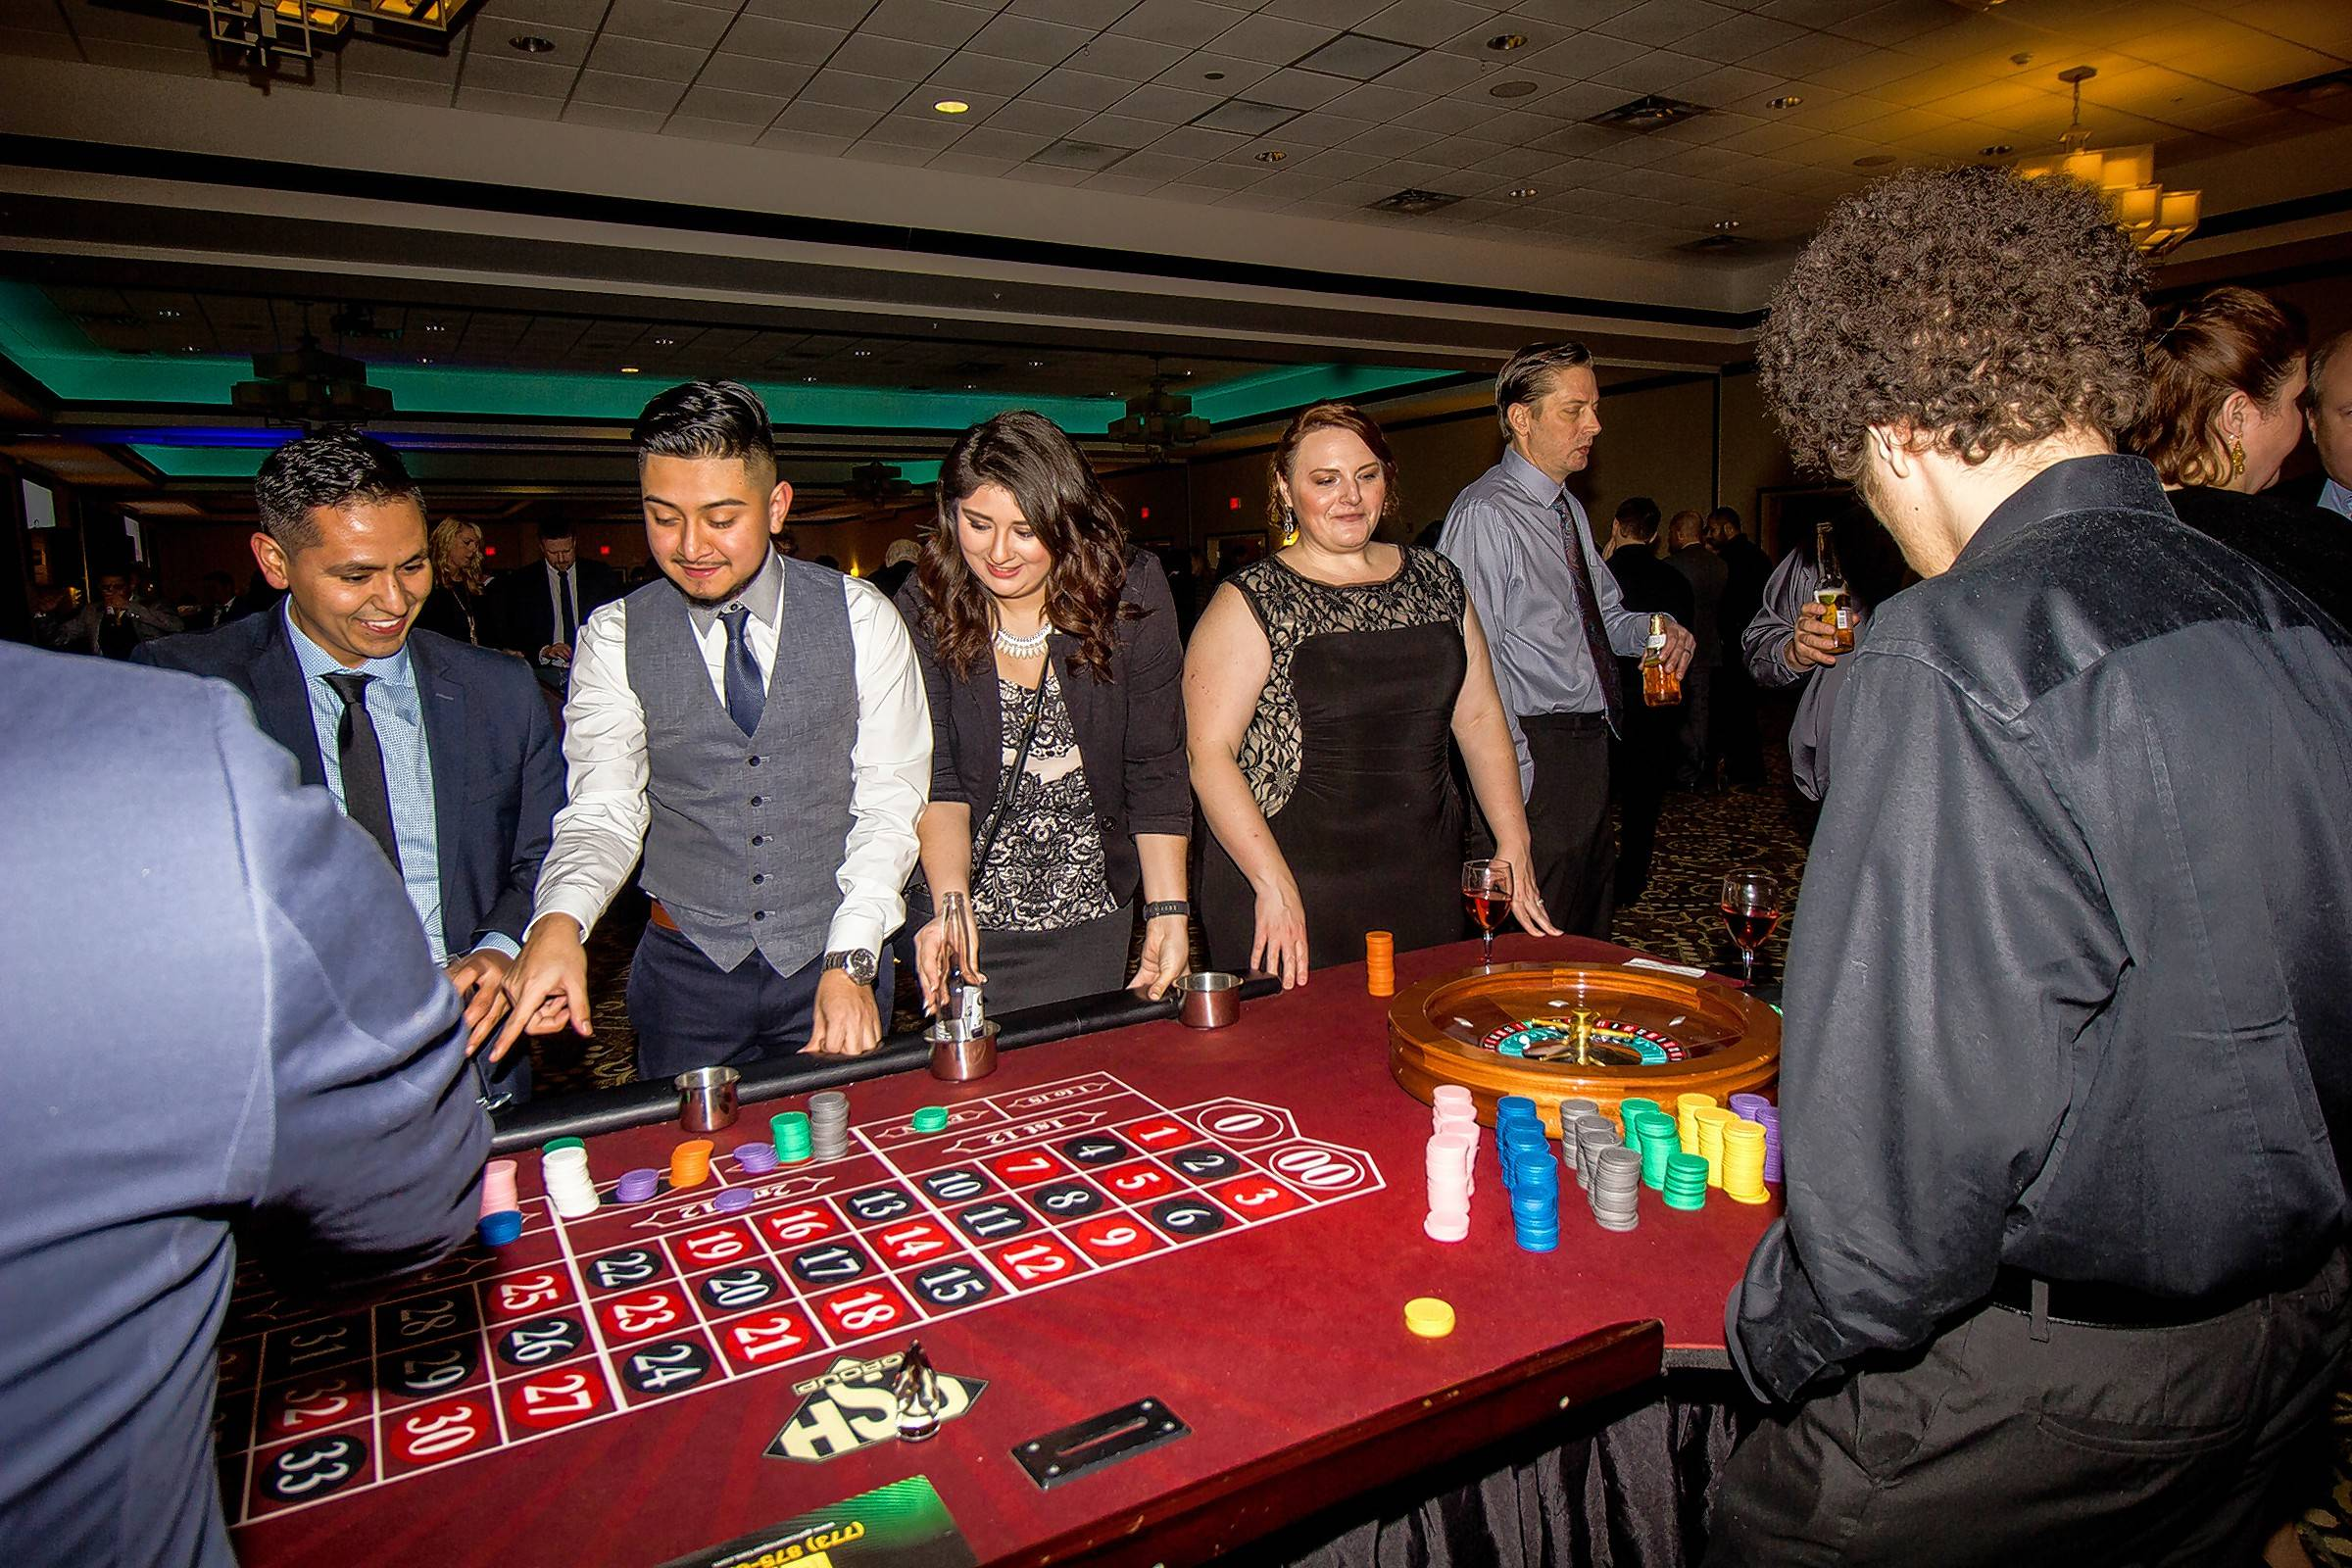 Adding a Vegas-style game night to event is sure to draw and keep a crowd and is a great way to change and spice up the typical fundraiser.